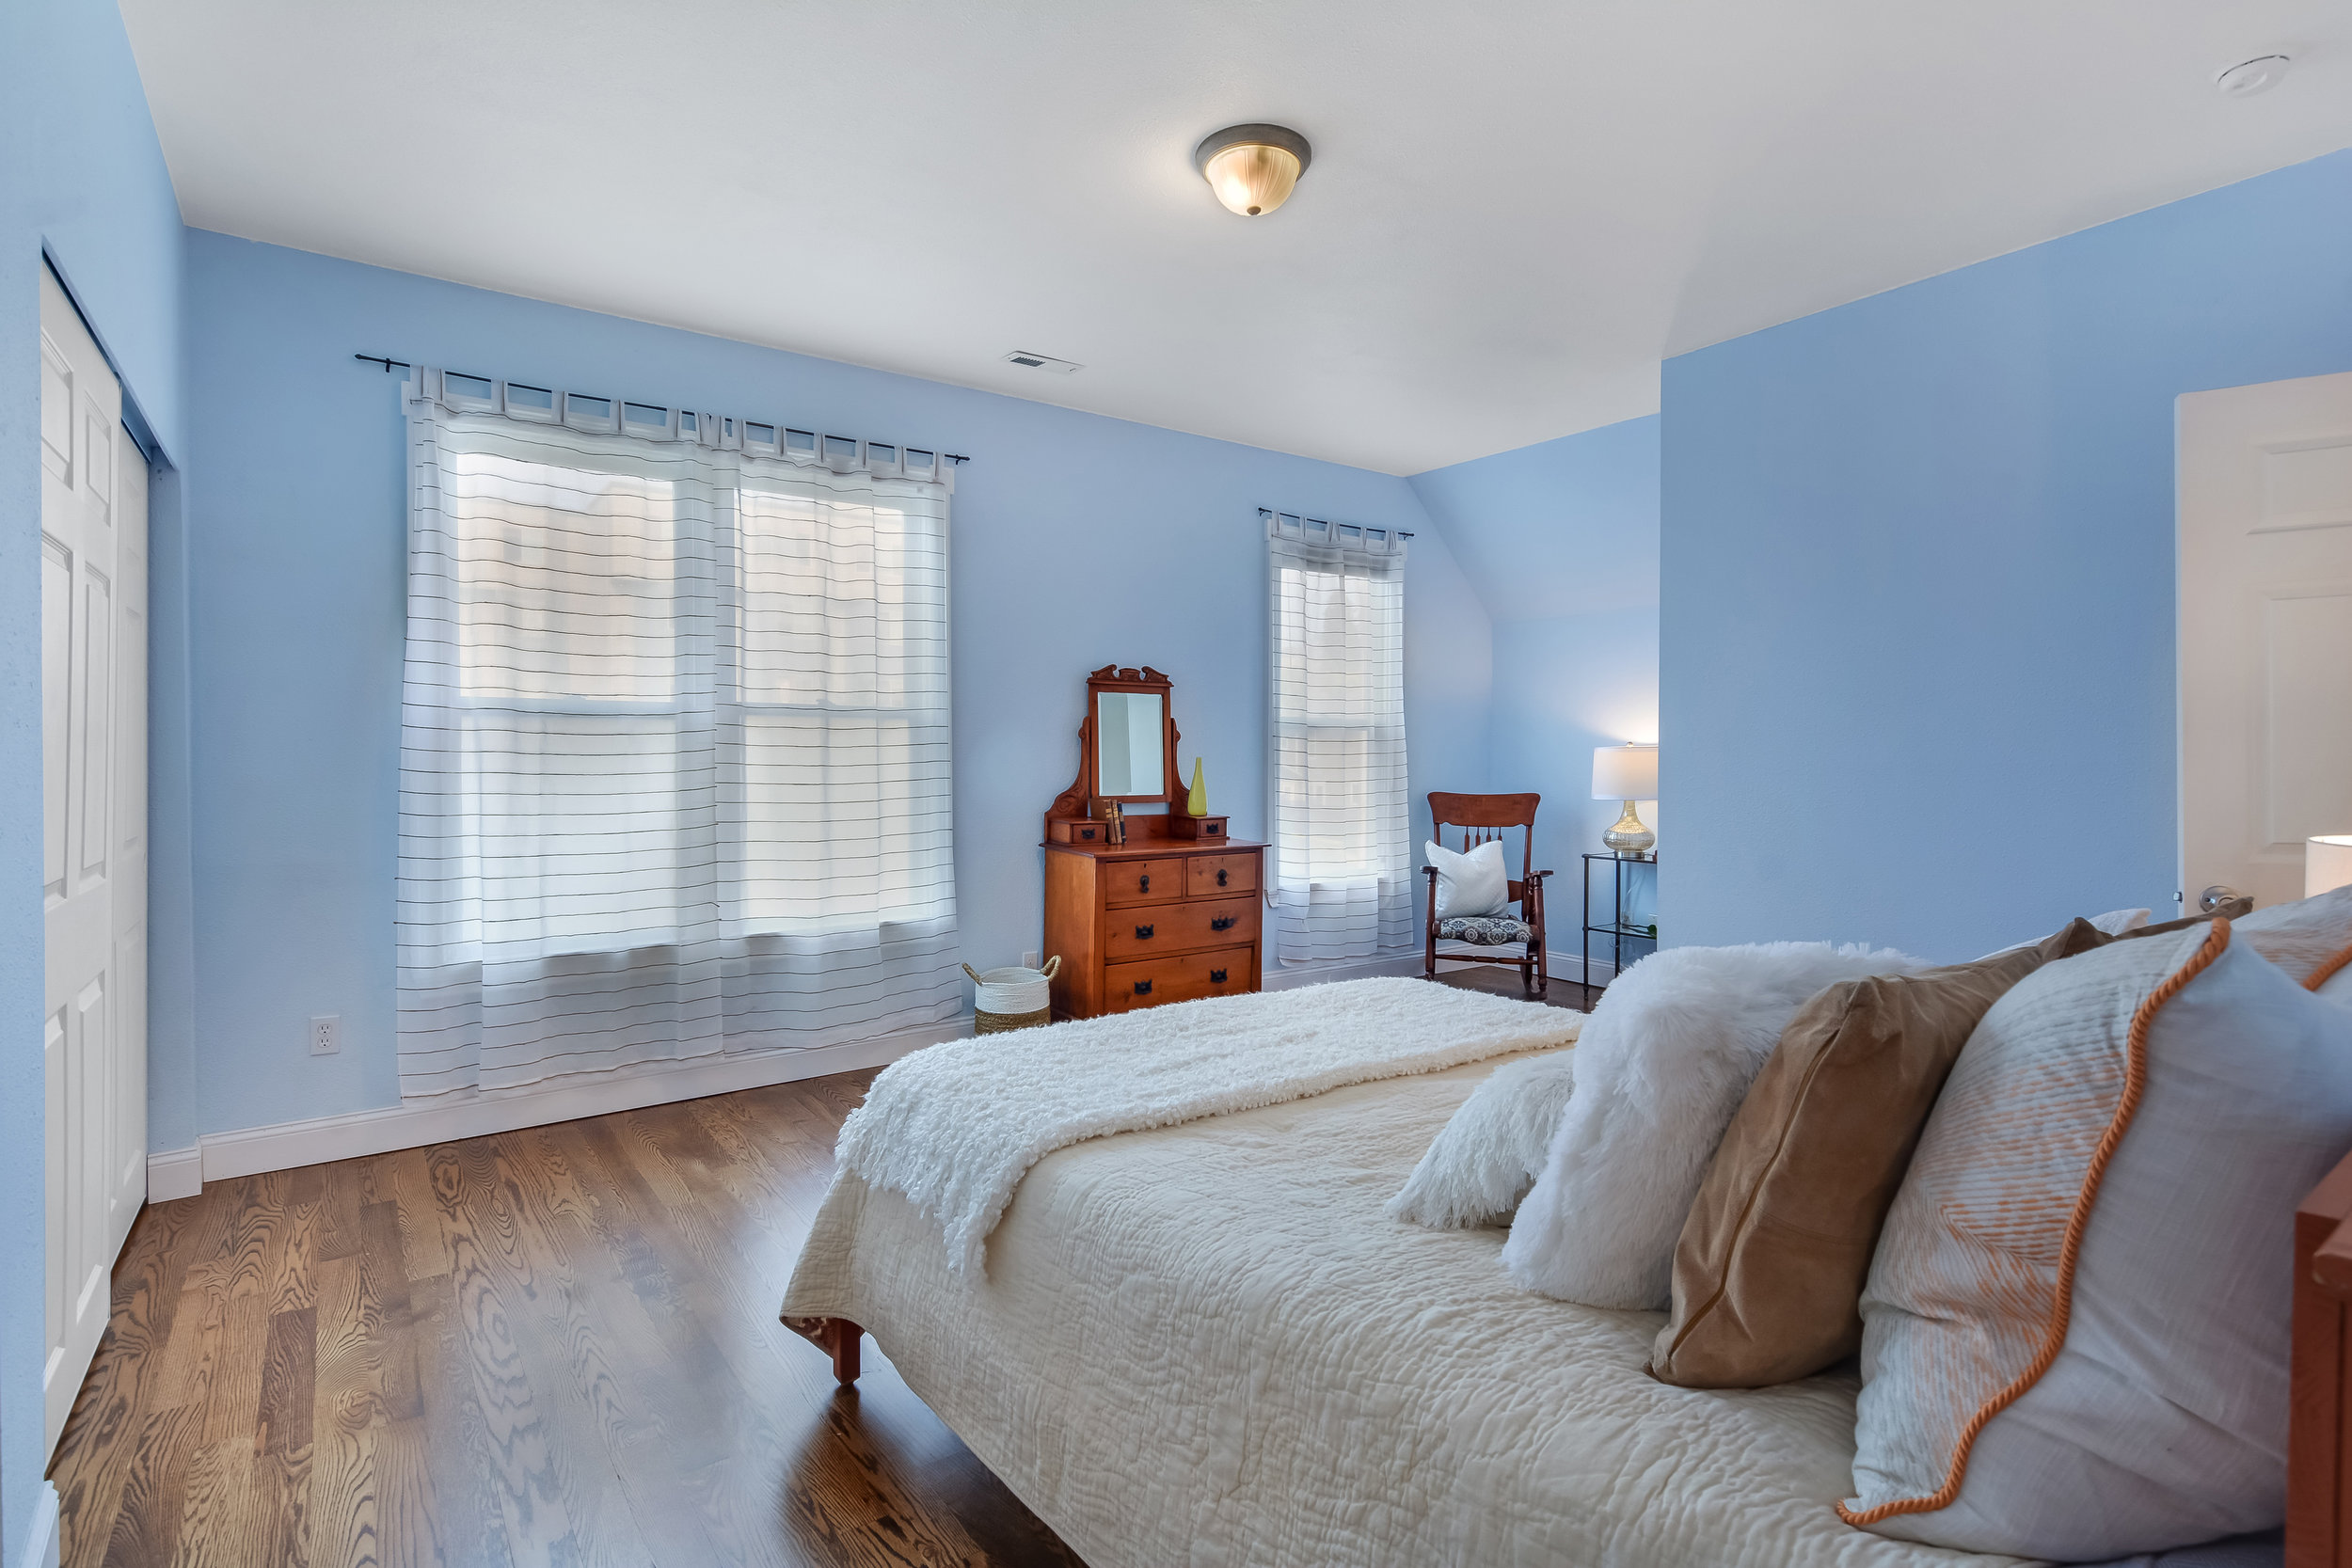 Another view of the large upstairs bedroom with its spacious clothes closet and lots of window light.